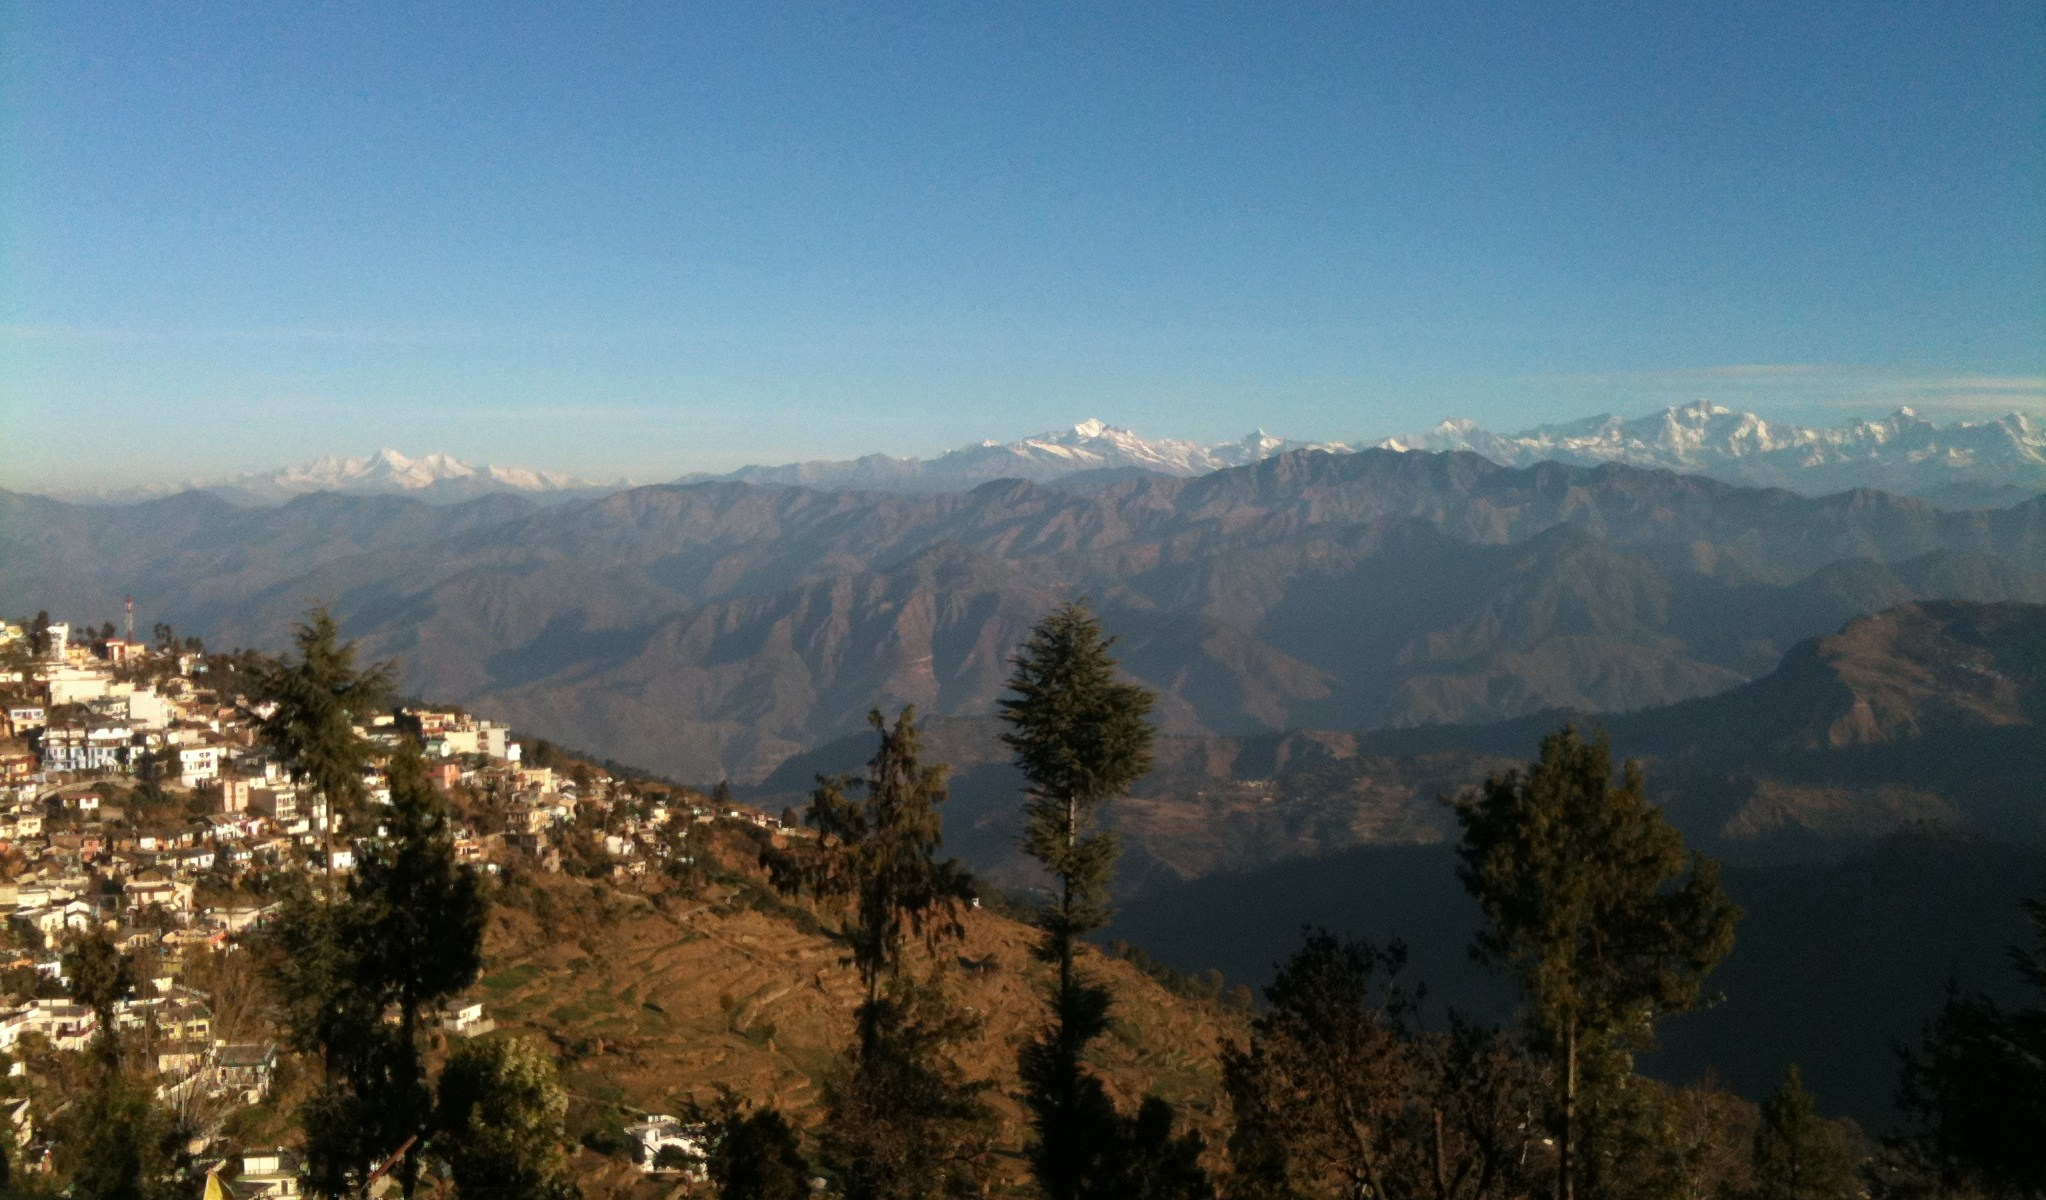 View of the pauri situated at Garhwal Himalayas